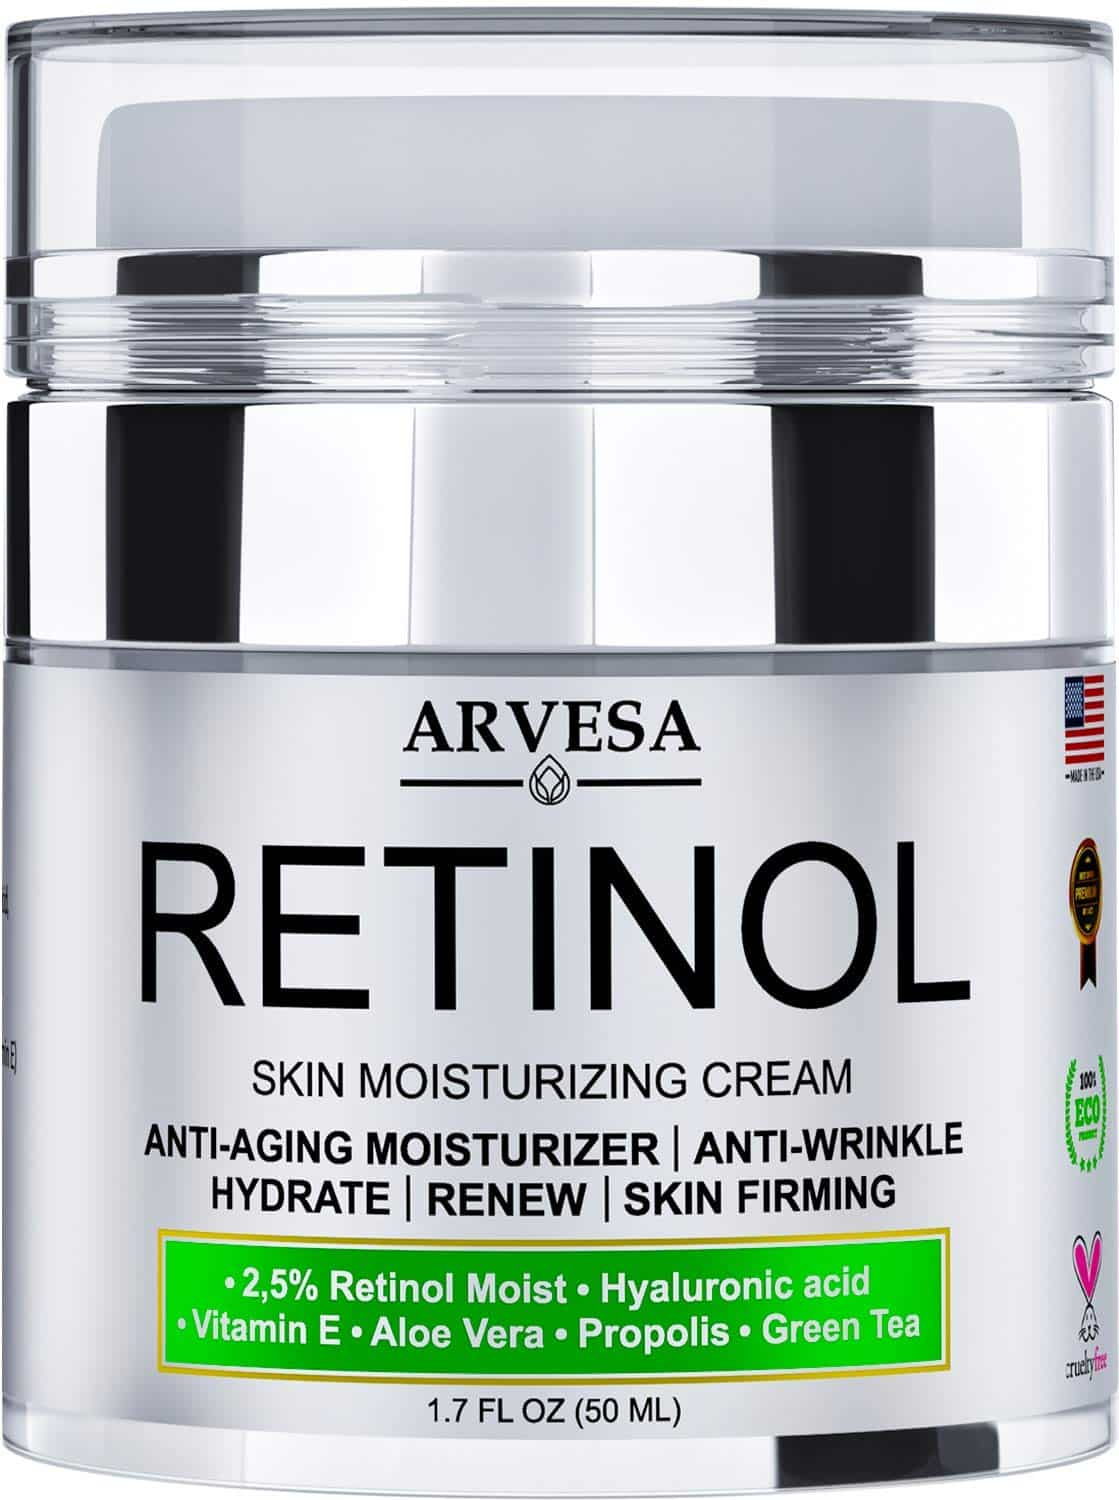 Anti-Aging Retinol Moisturizer Cream for Face, Neck & Décolleté